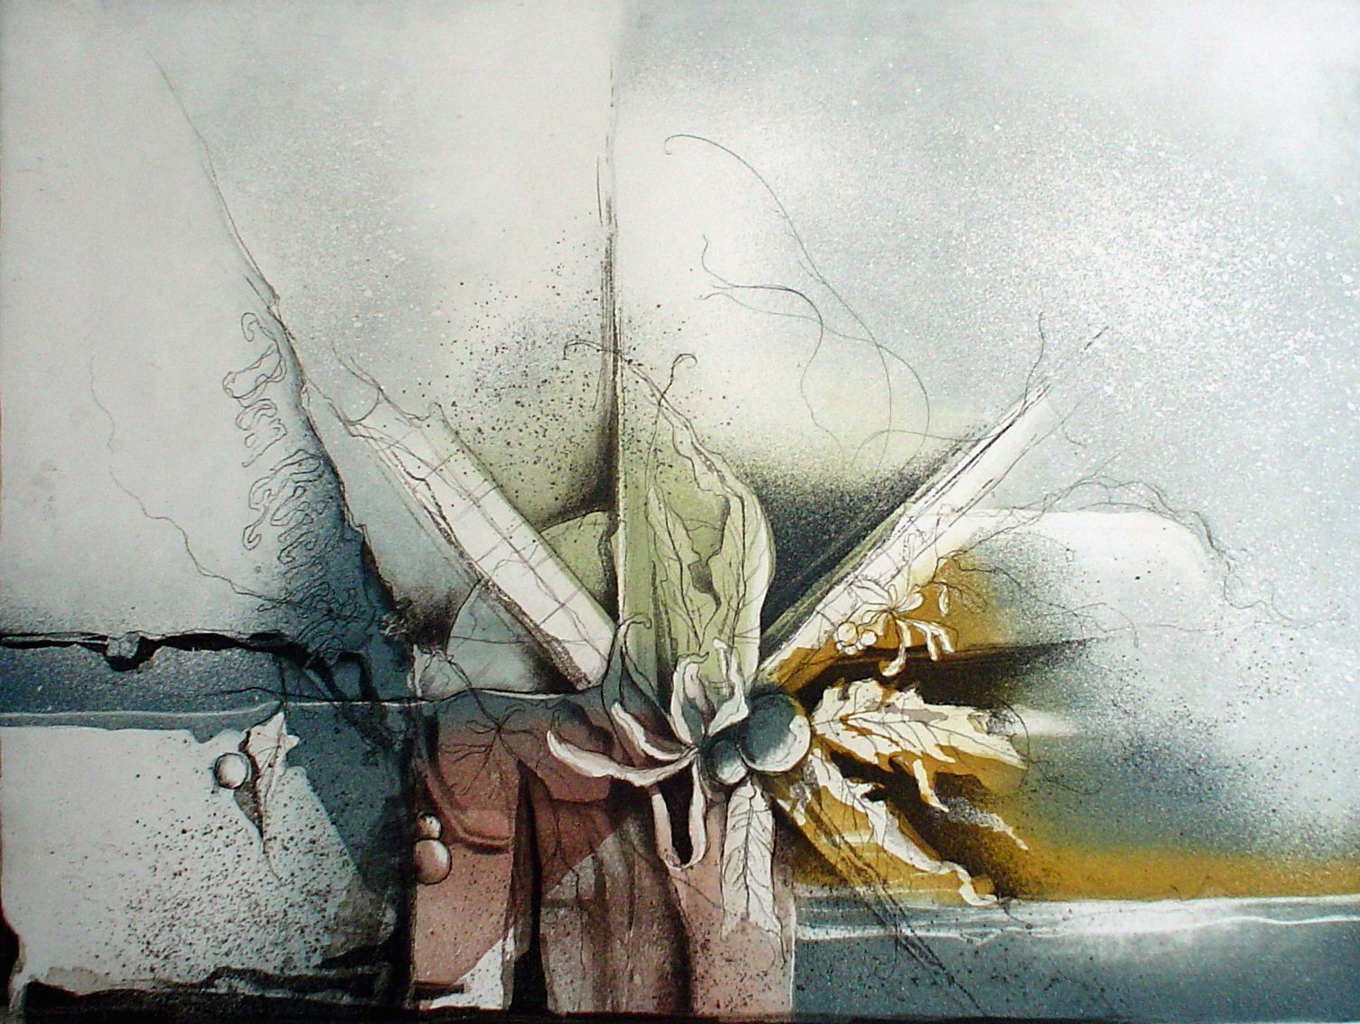 Blue Flower Autumn Colours by Ruediger Brassel - original etching, signed and numbered 75/ 99